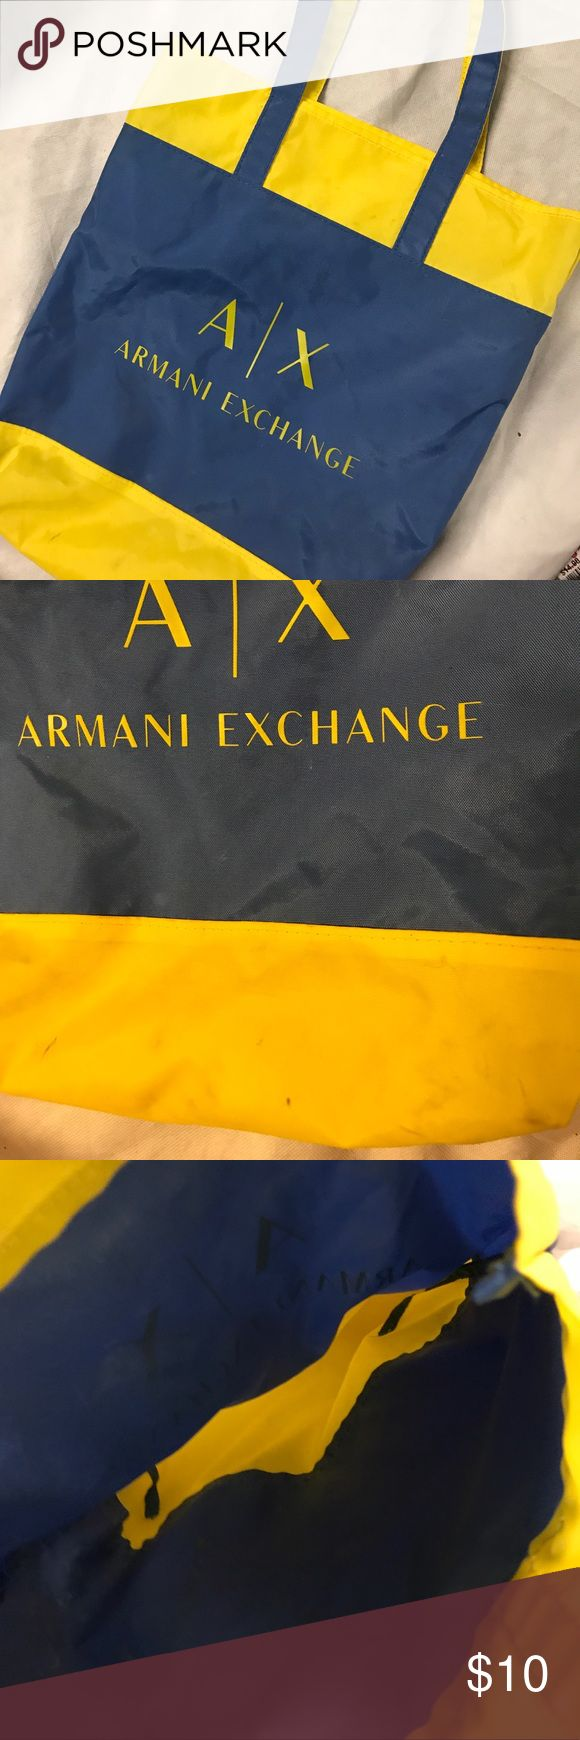 "AX Armani exchange Tote Bag tote measures 15"" x 13"" with SD 9"" Armani Exchange Bags Totes"